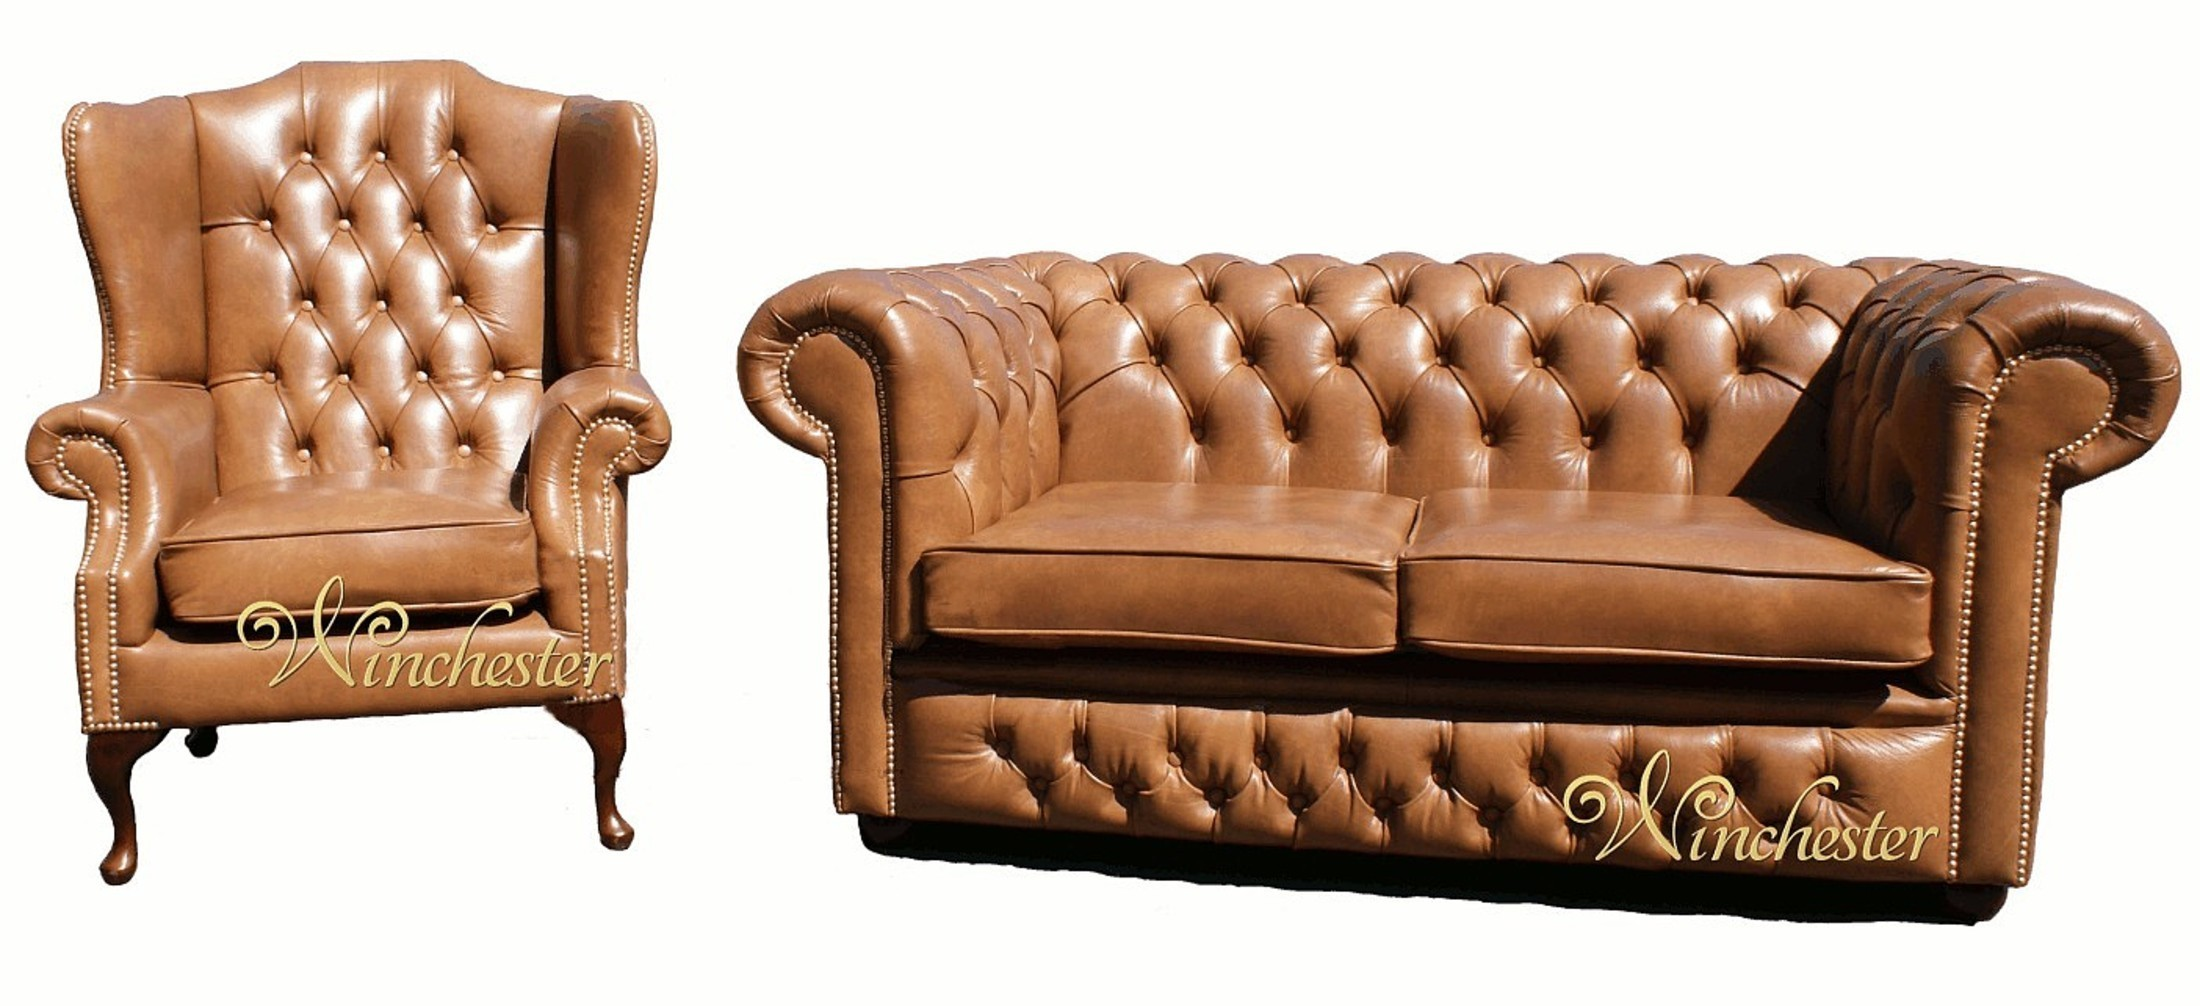 Chesterfield Old English Suite Wing 2 Seater Settee Wc